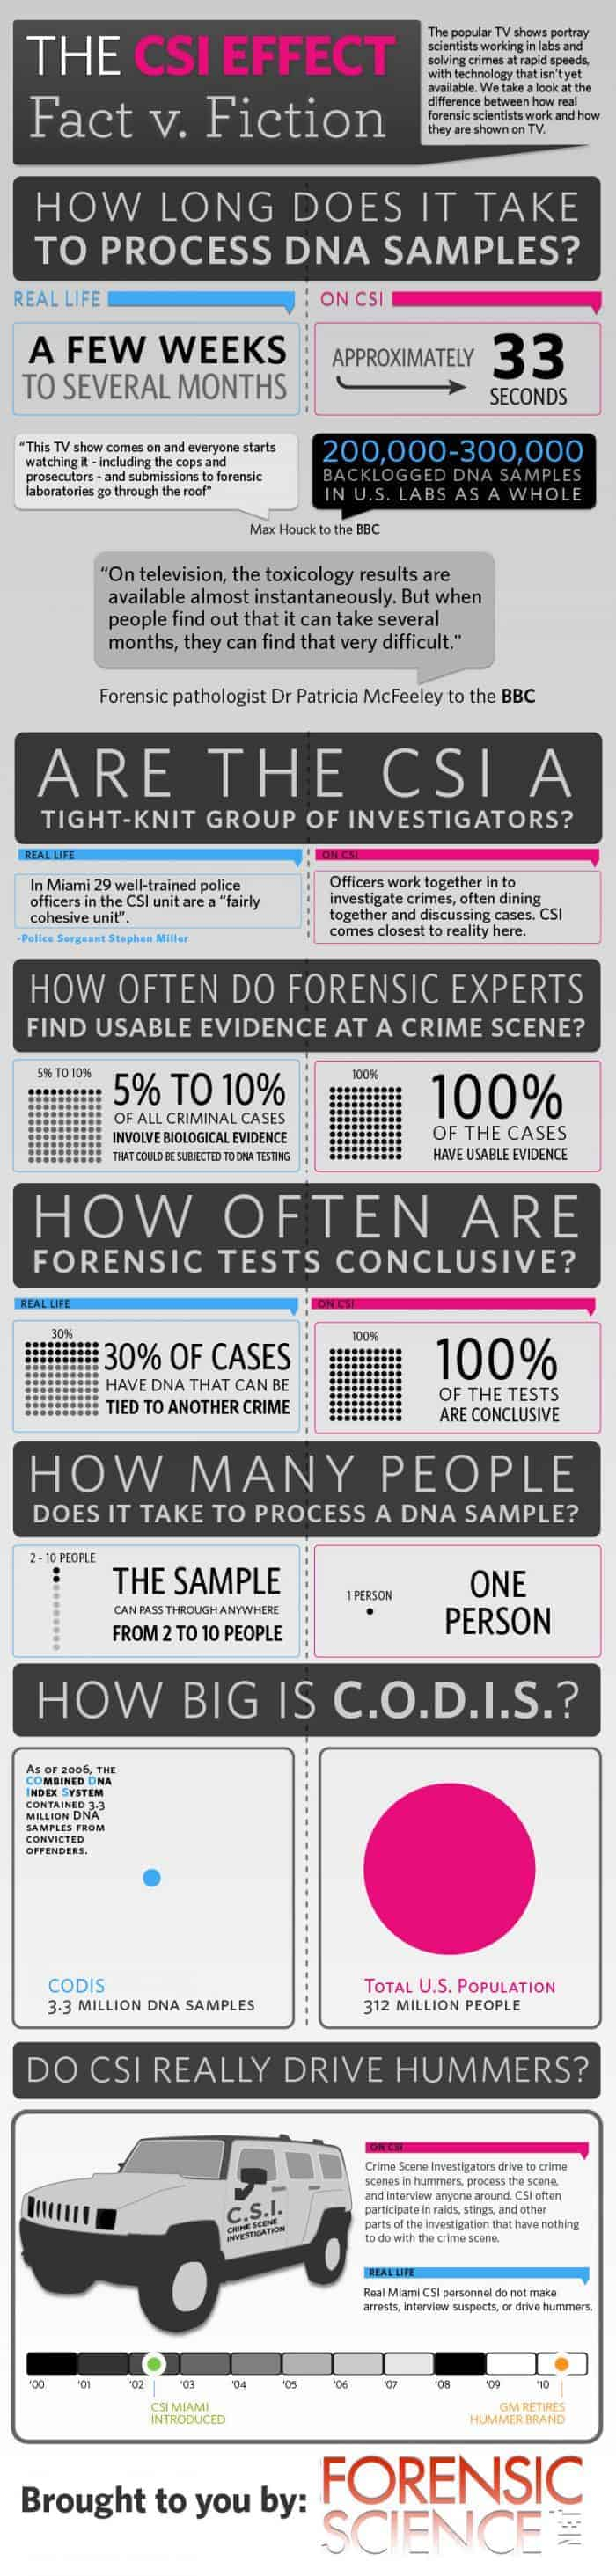 Csi Effect Fact V. Fiction